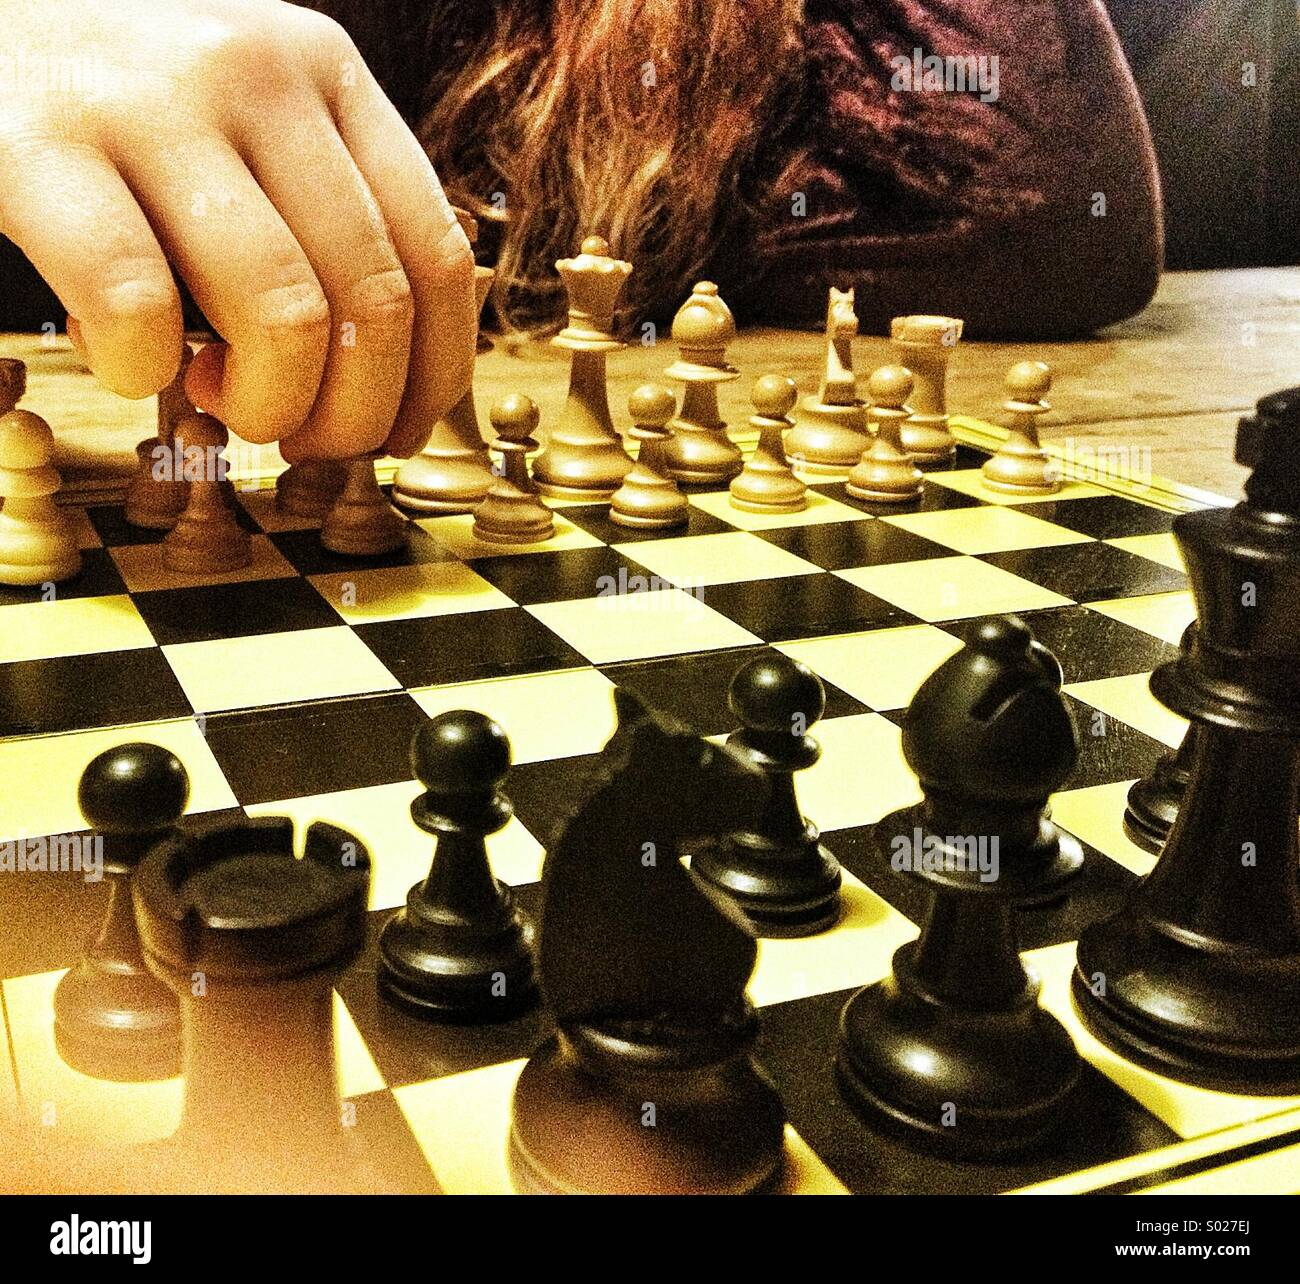 Playing chess - Stock Image